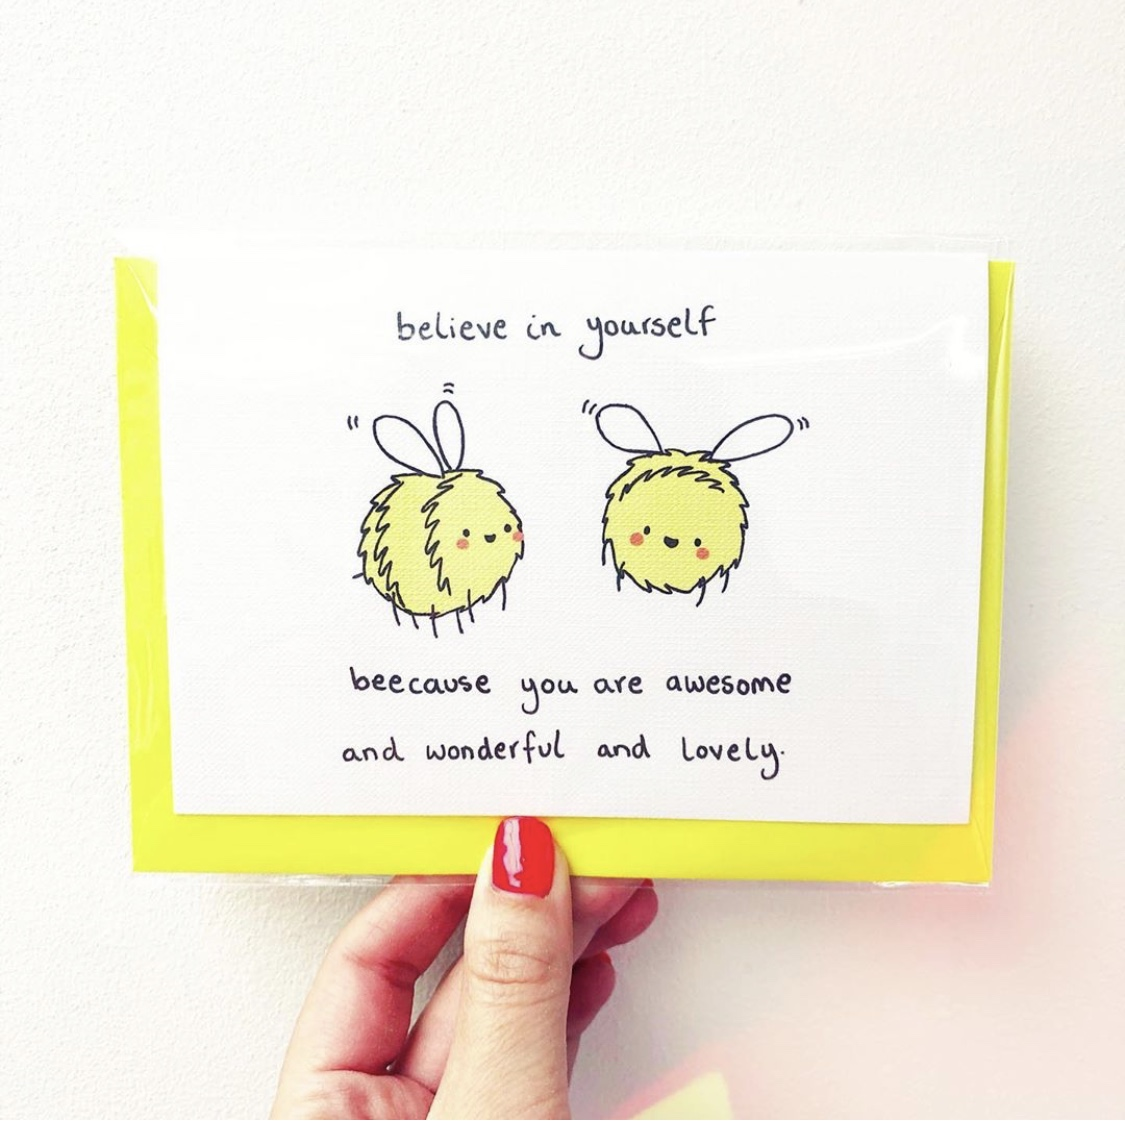 Personalised greeting cards on ArtWOW: BELIEVE IN YOURSELF by Ellie Bednall